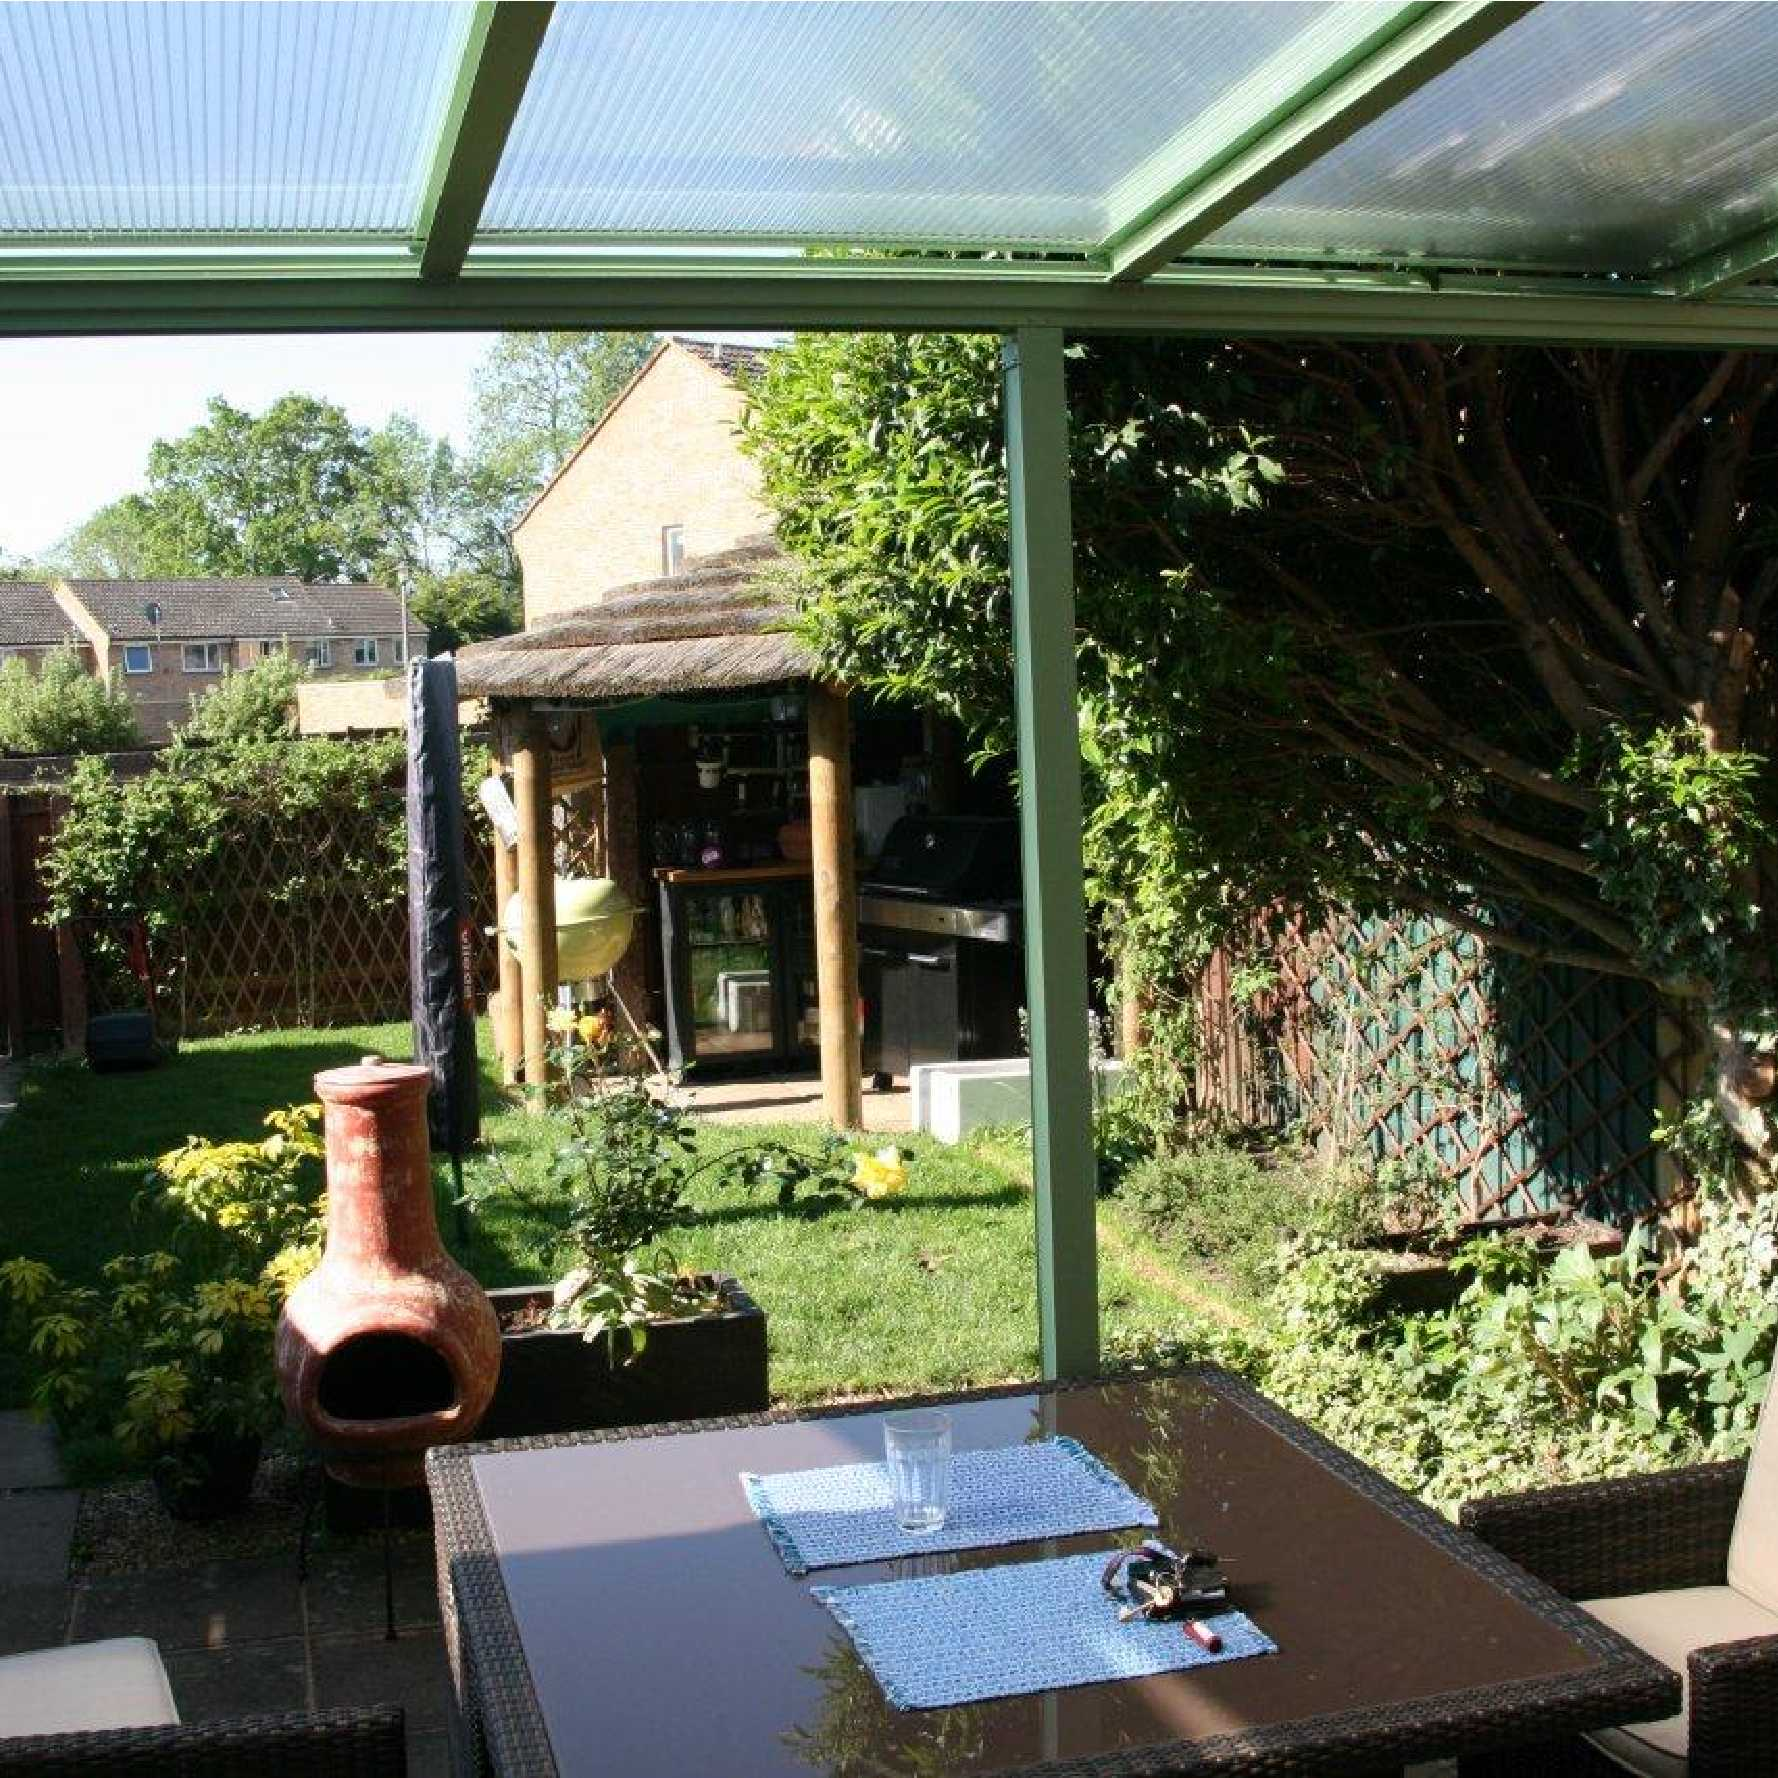 Affordable Omega Smart Lean-To Canopy with 16mm Polycarbonate Glazing - 7.8m (W) x 3.5m (P), (4) Supporting Posts